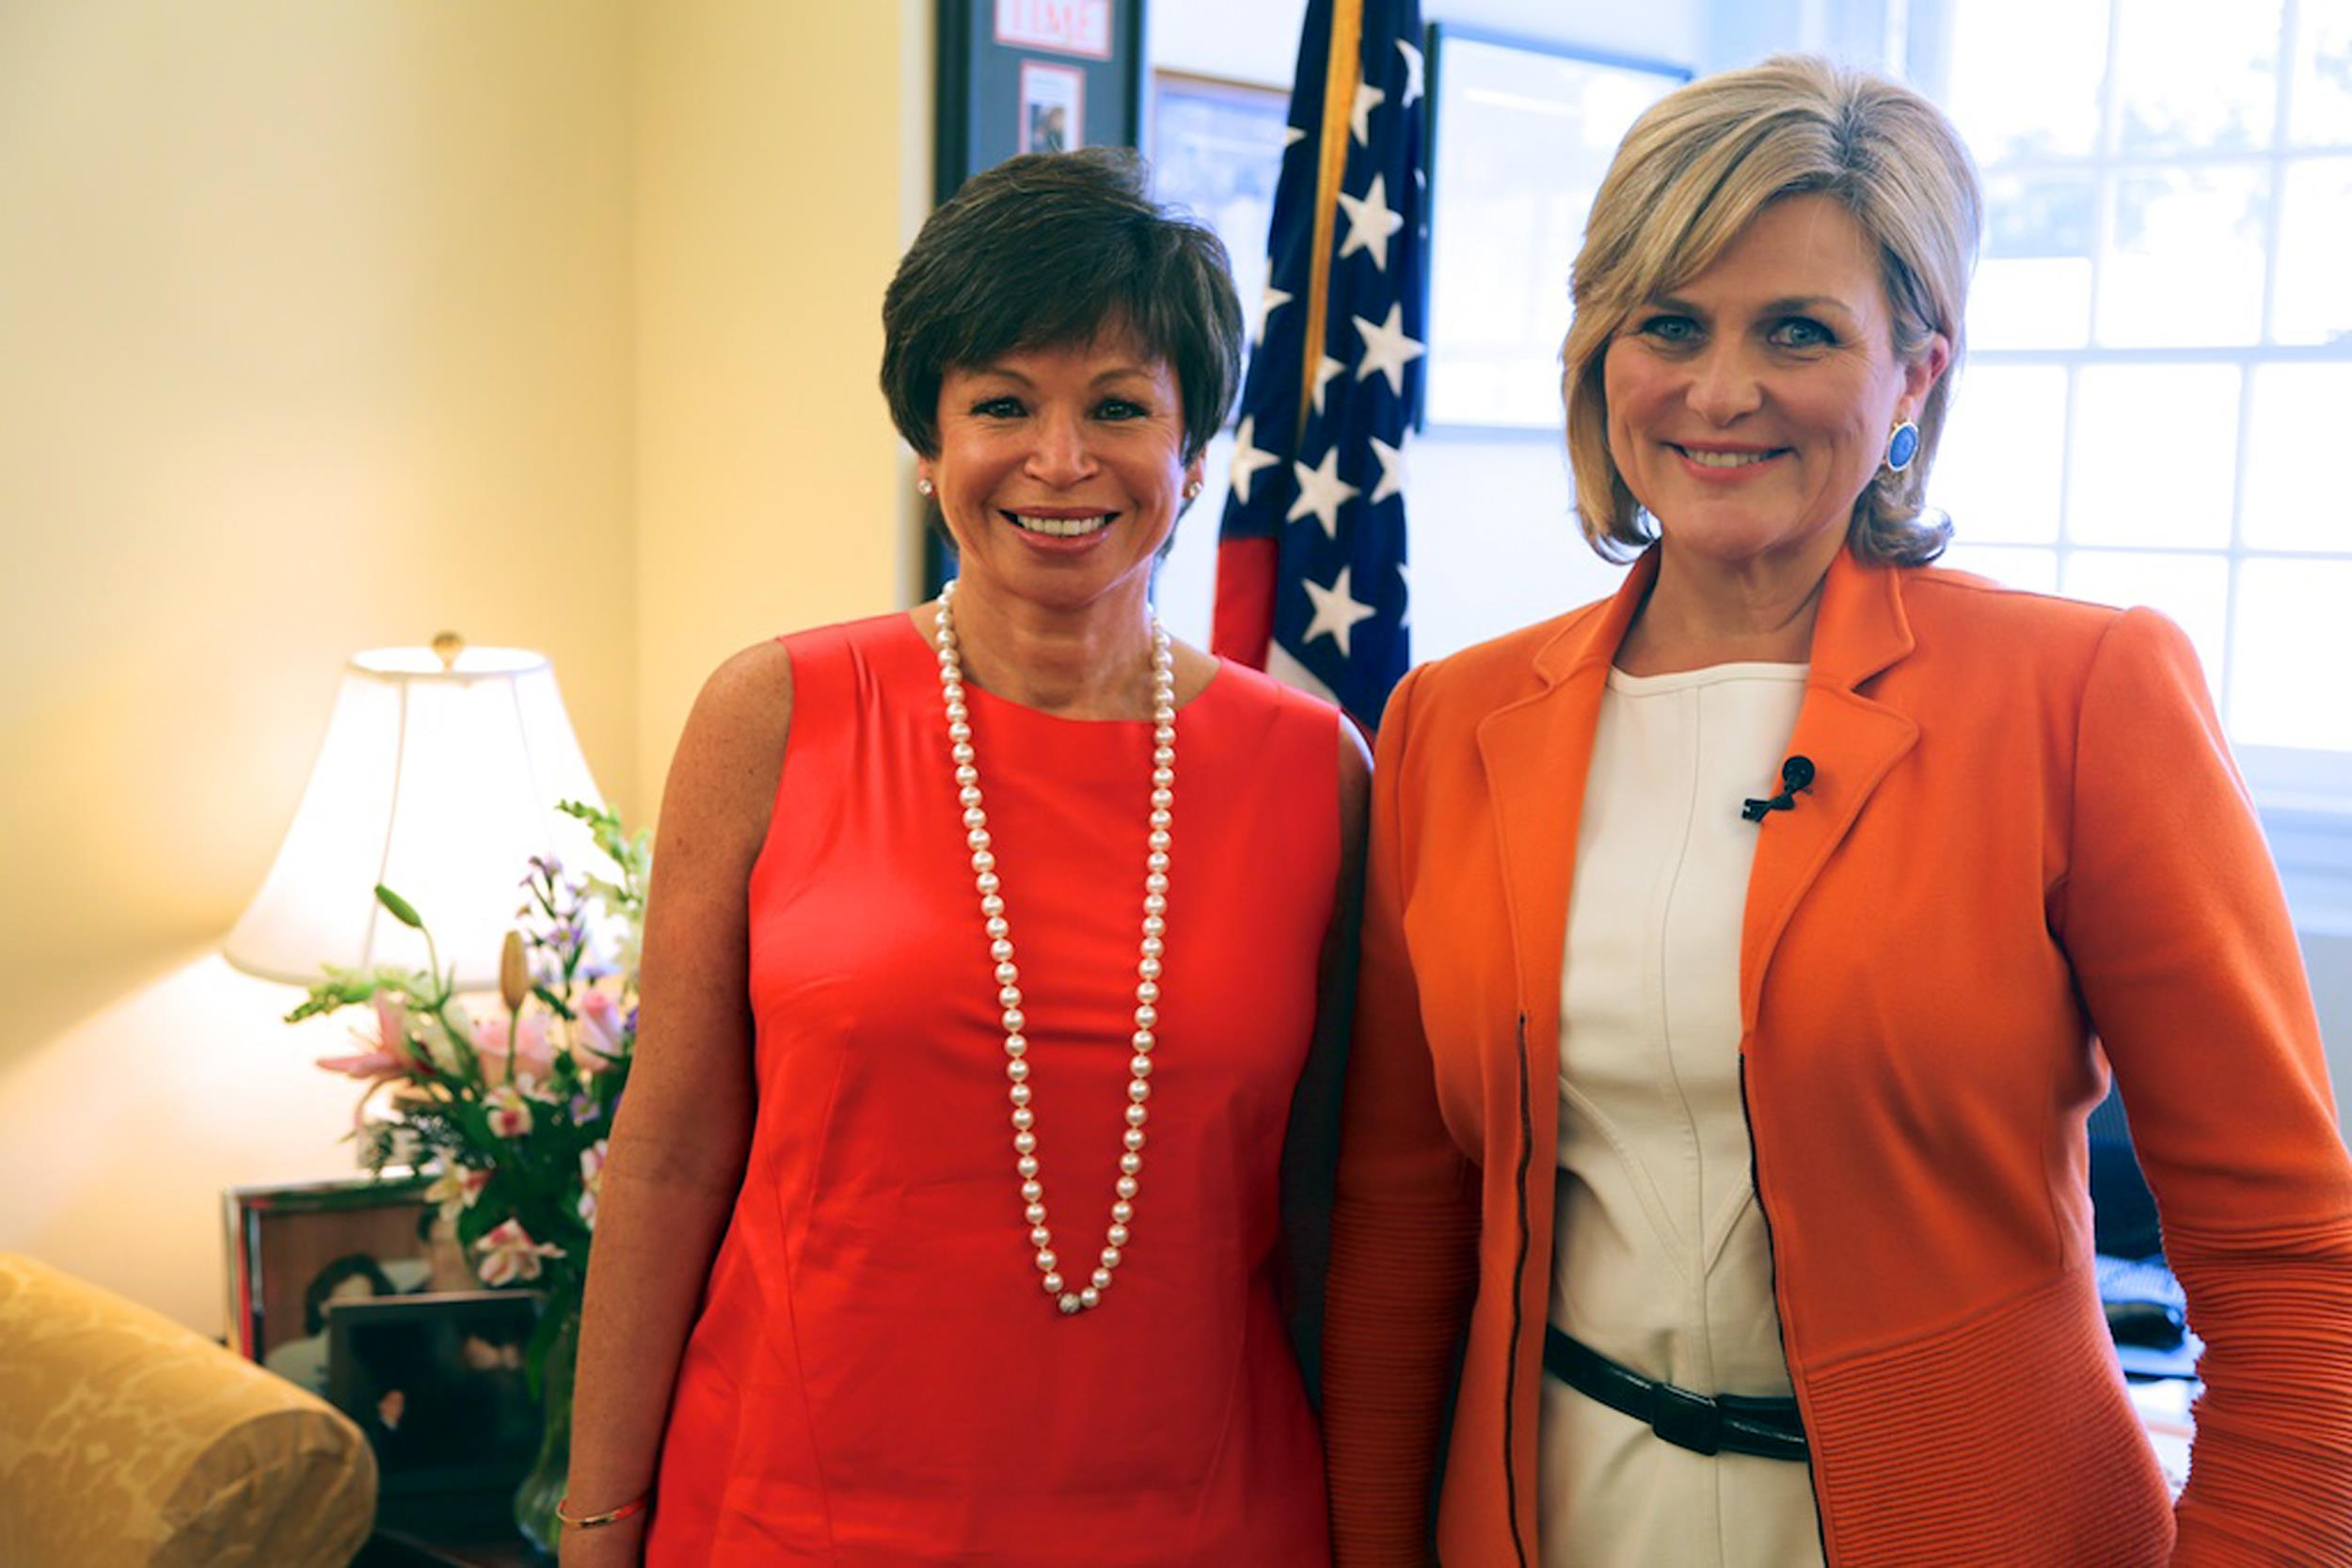 Image: Cynthia McFadden of NBC News in the White House with Valerie Jarrett, senior adviser to President Obama.